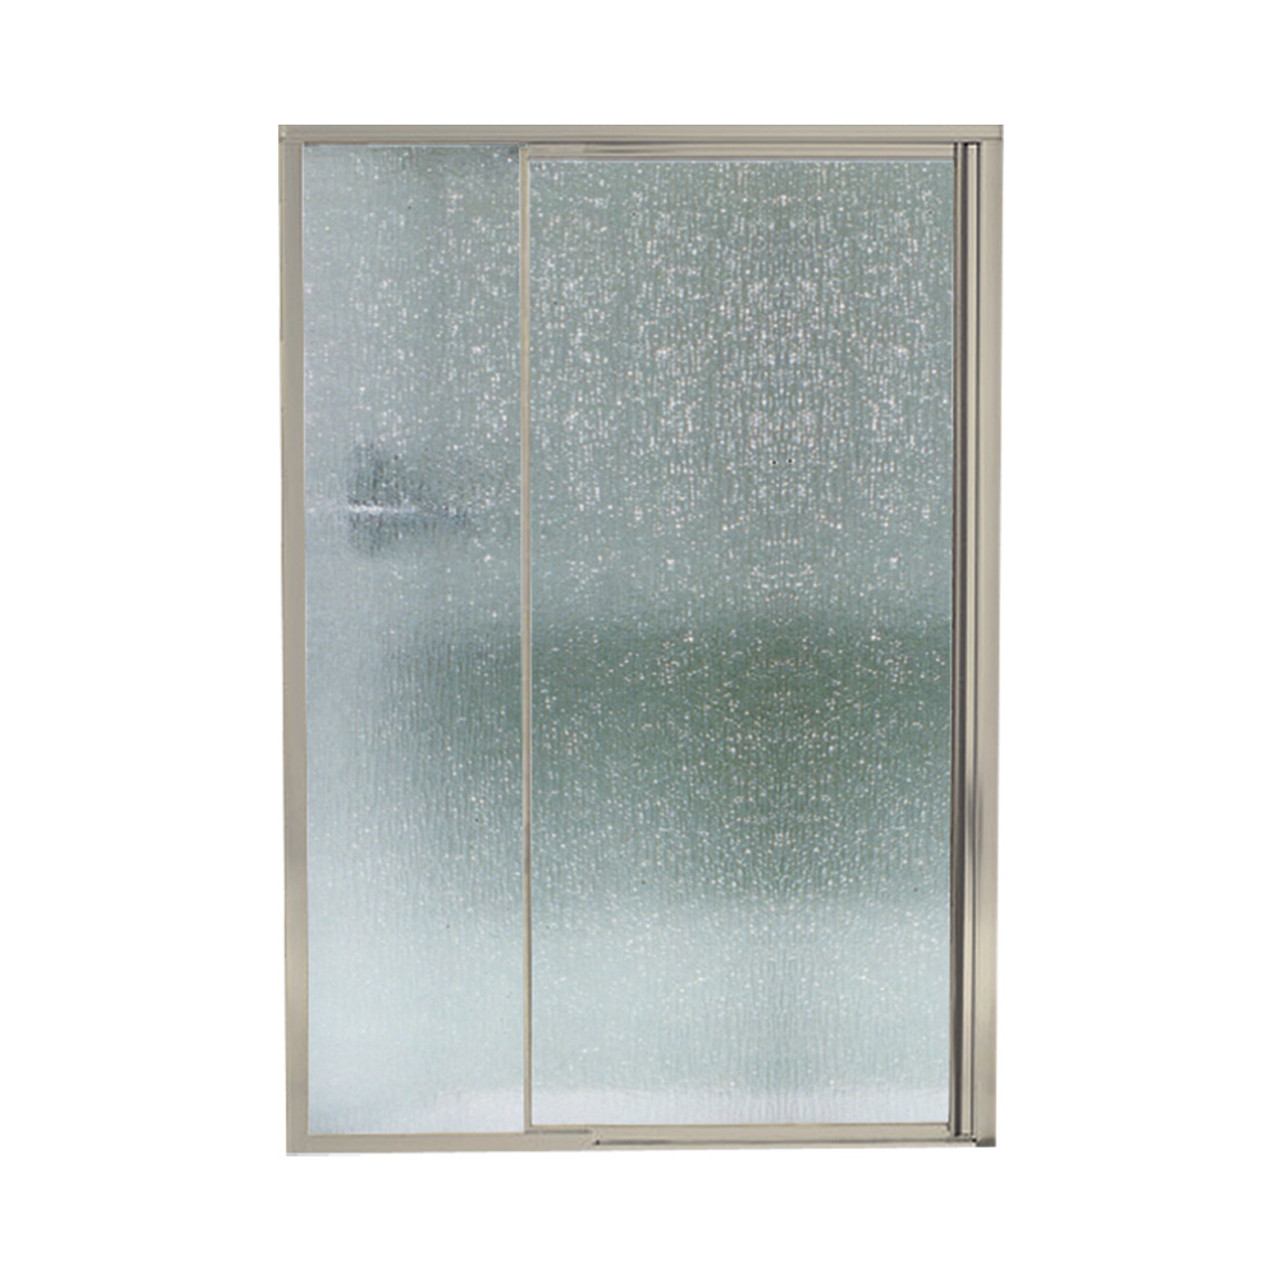 Sterling 1505d 48n G06 Vista Pivot Ii 42 In X 48 In Framed Alcove Shower Door With Rain Glass